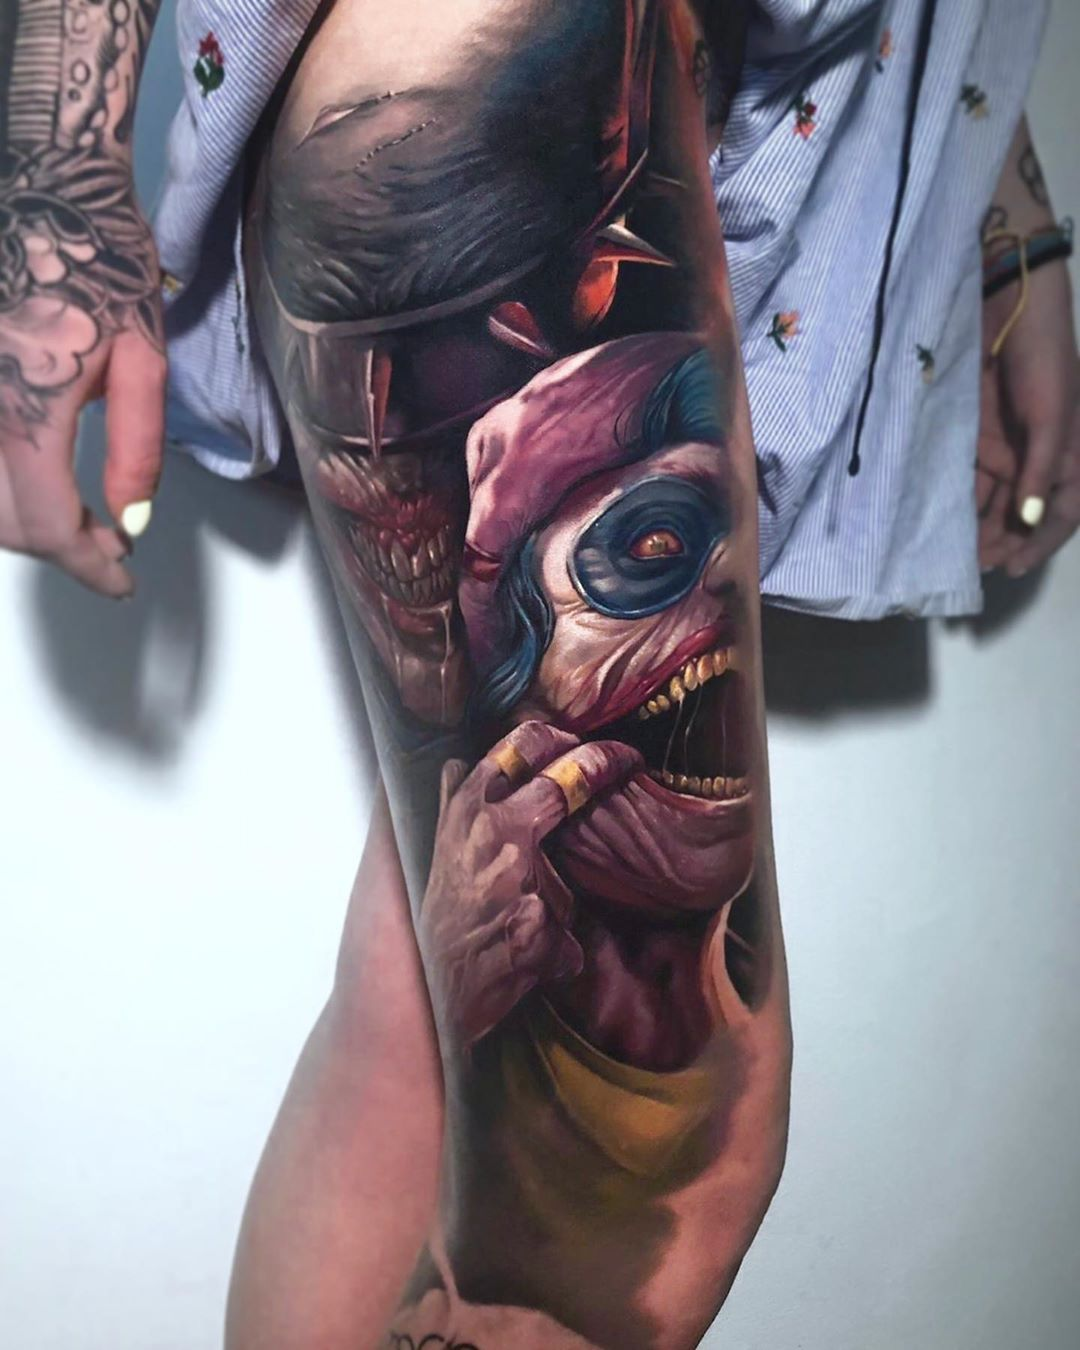 https://artdrivertattoomachines.com/wp-content/uploads/2019/10/simonemarchitattoo_60892778_430315837822995_1761404780430155372_n.jpg